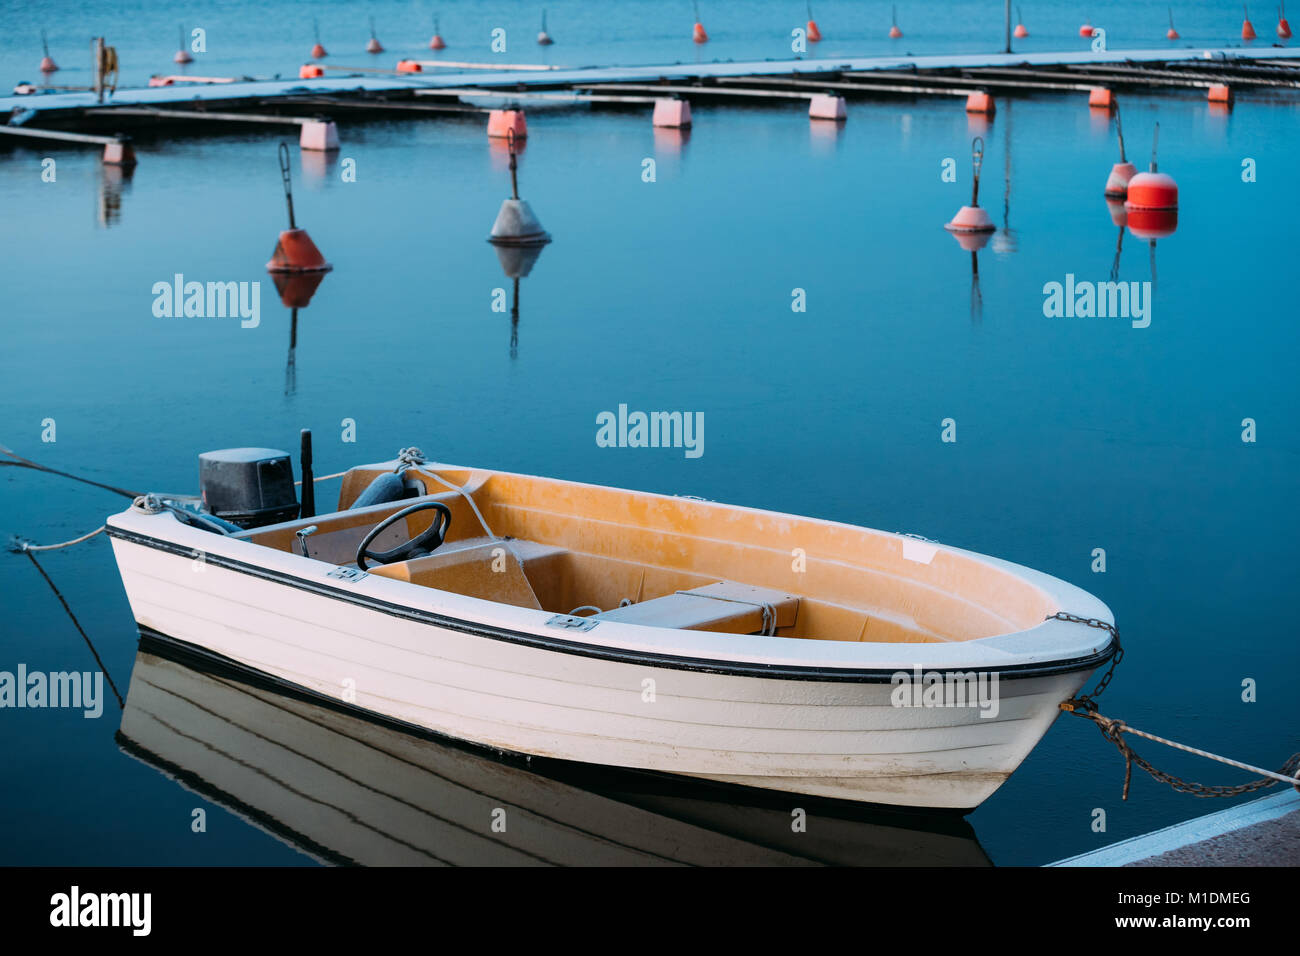 Helsinki, Finland. Powerboat Or Motorboat Moored At Berth. Frost On Boat Surface - Stock Image